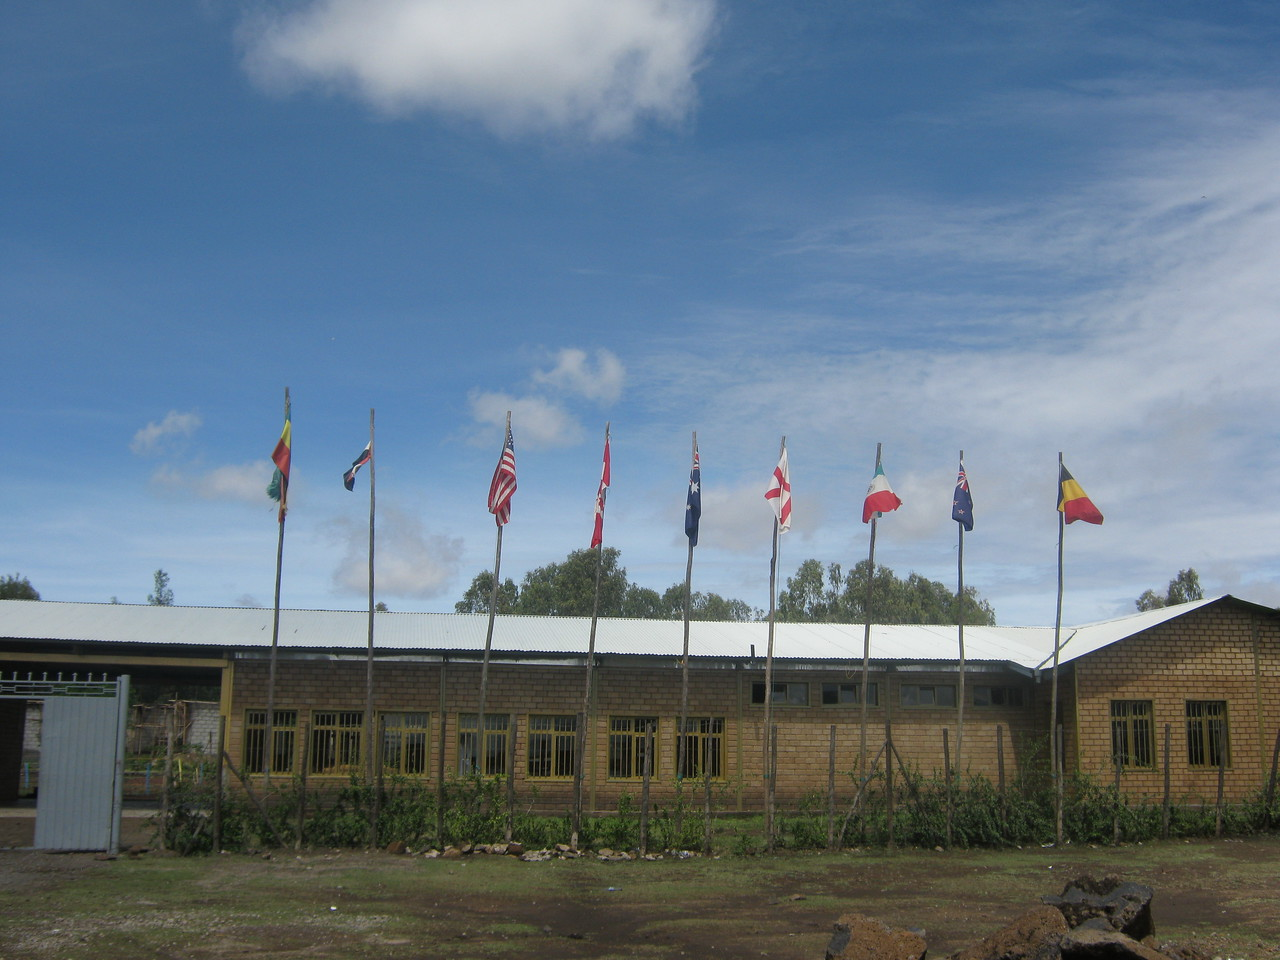 The main school building, with flags.